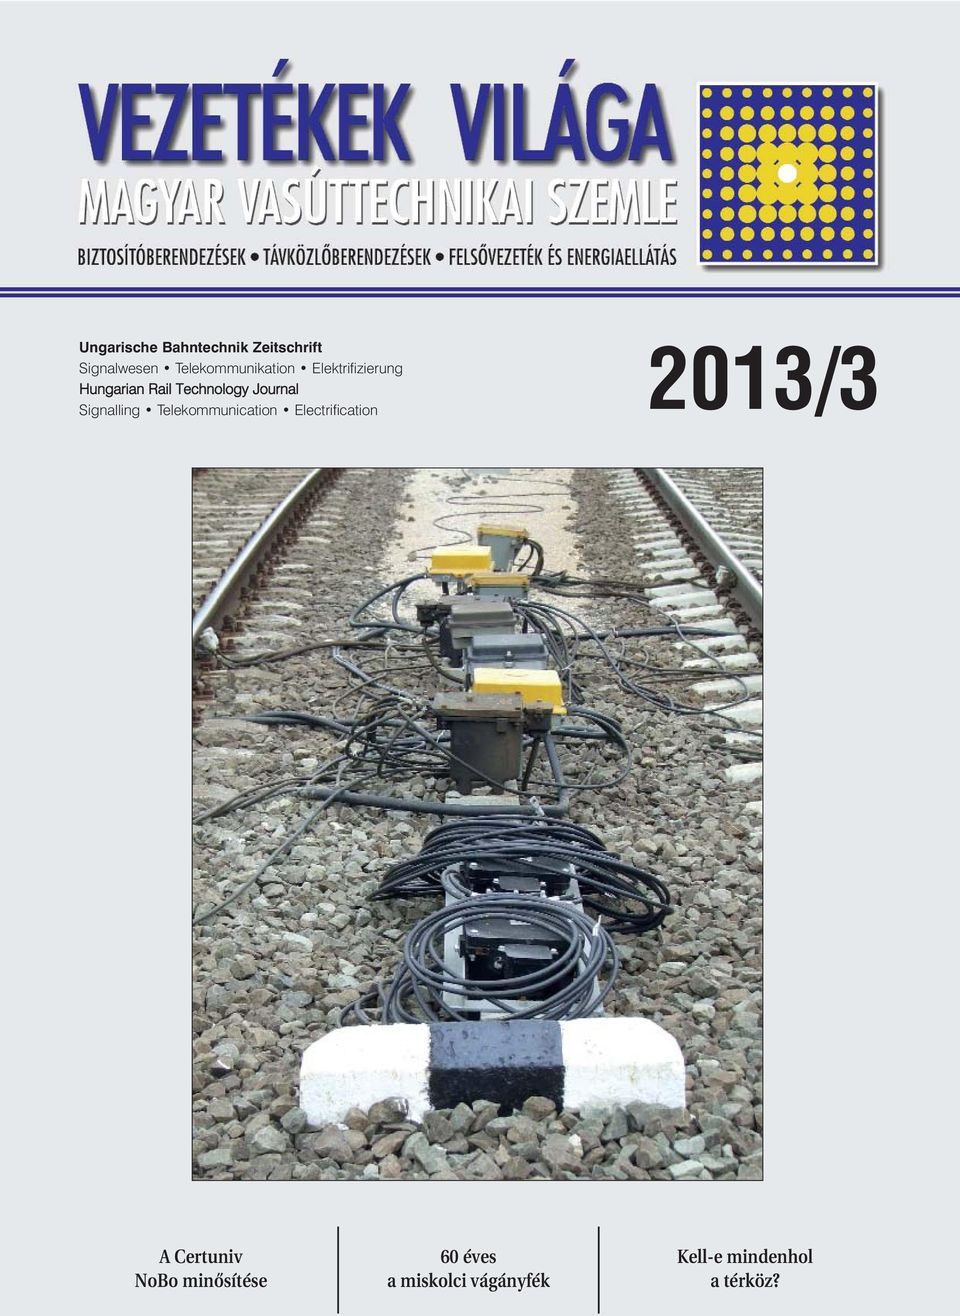 Journal Signalling Telekommunication Electrification 2013/3 A